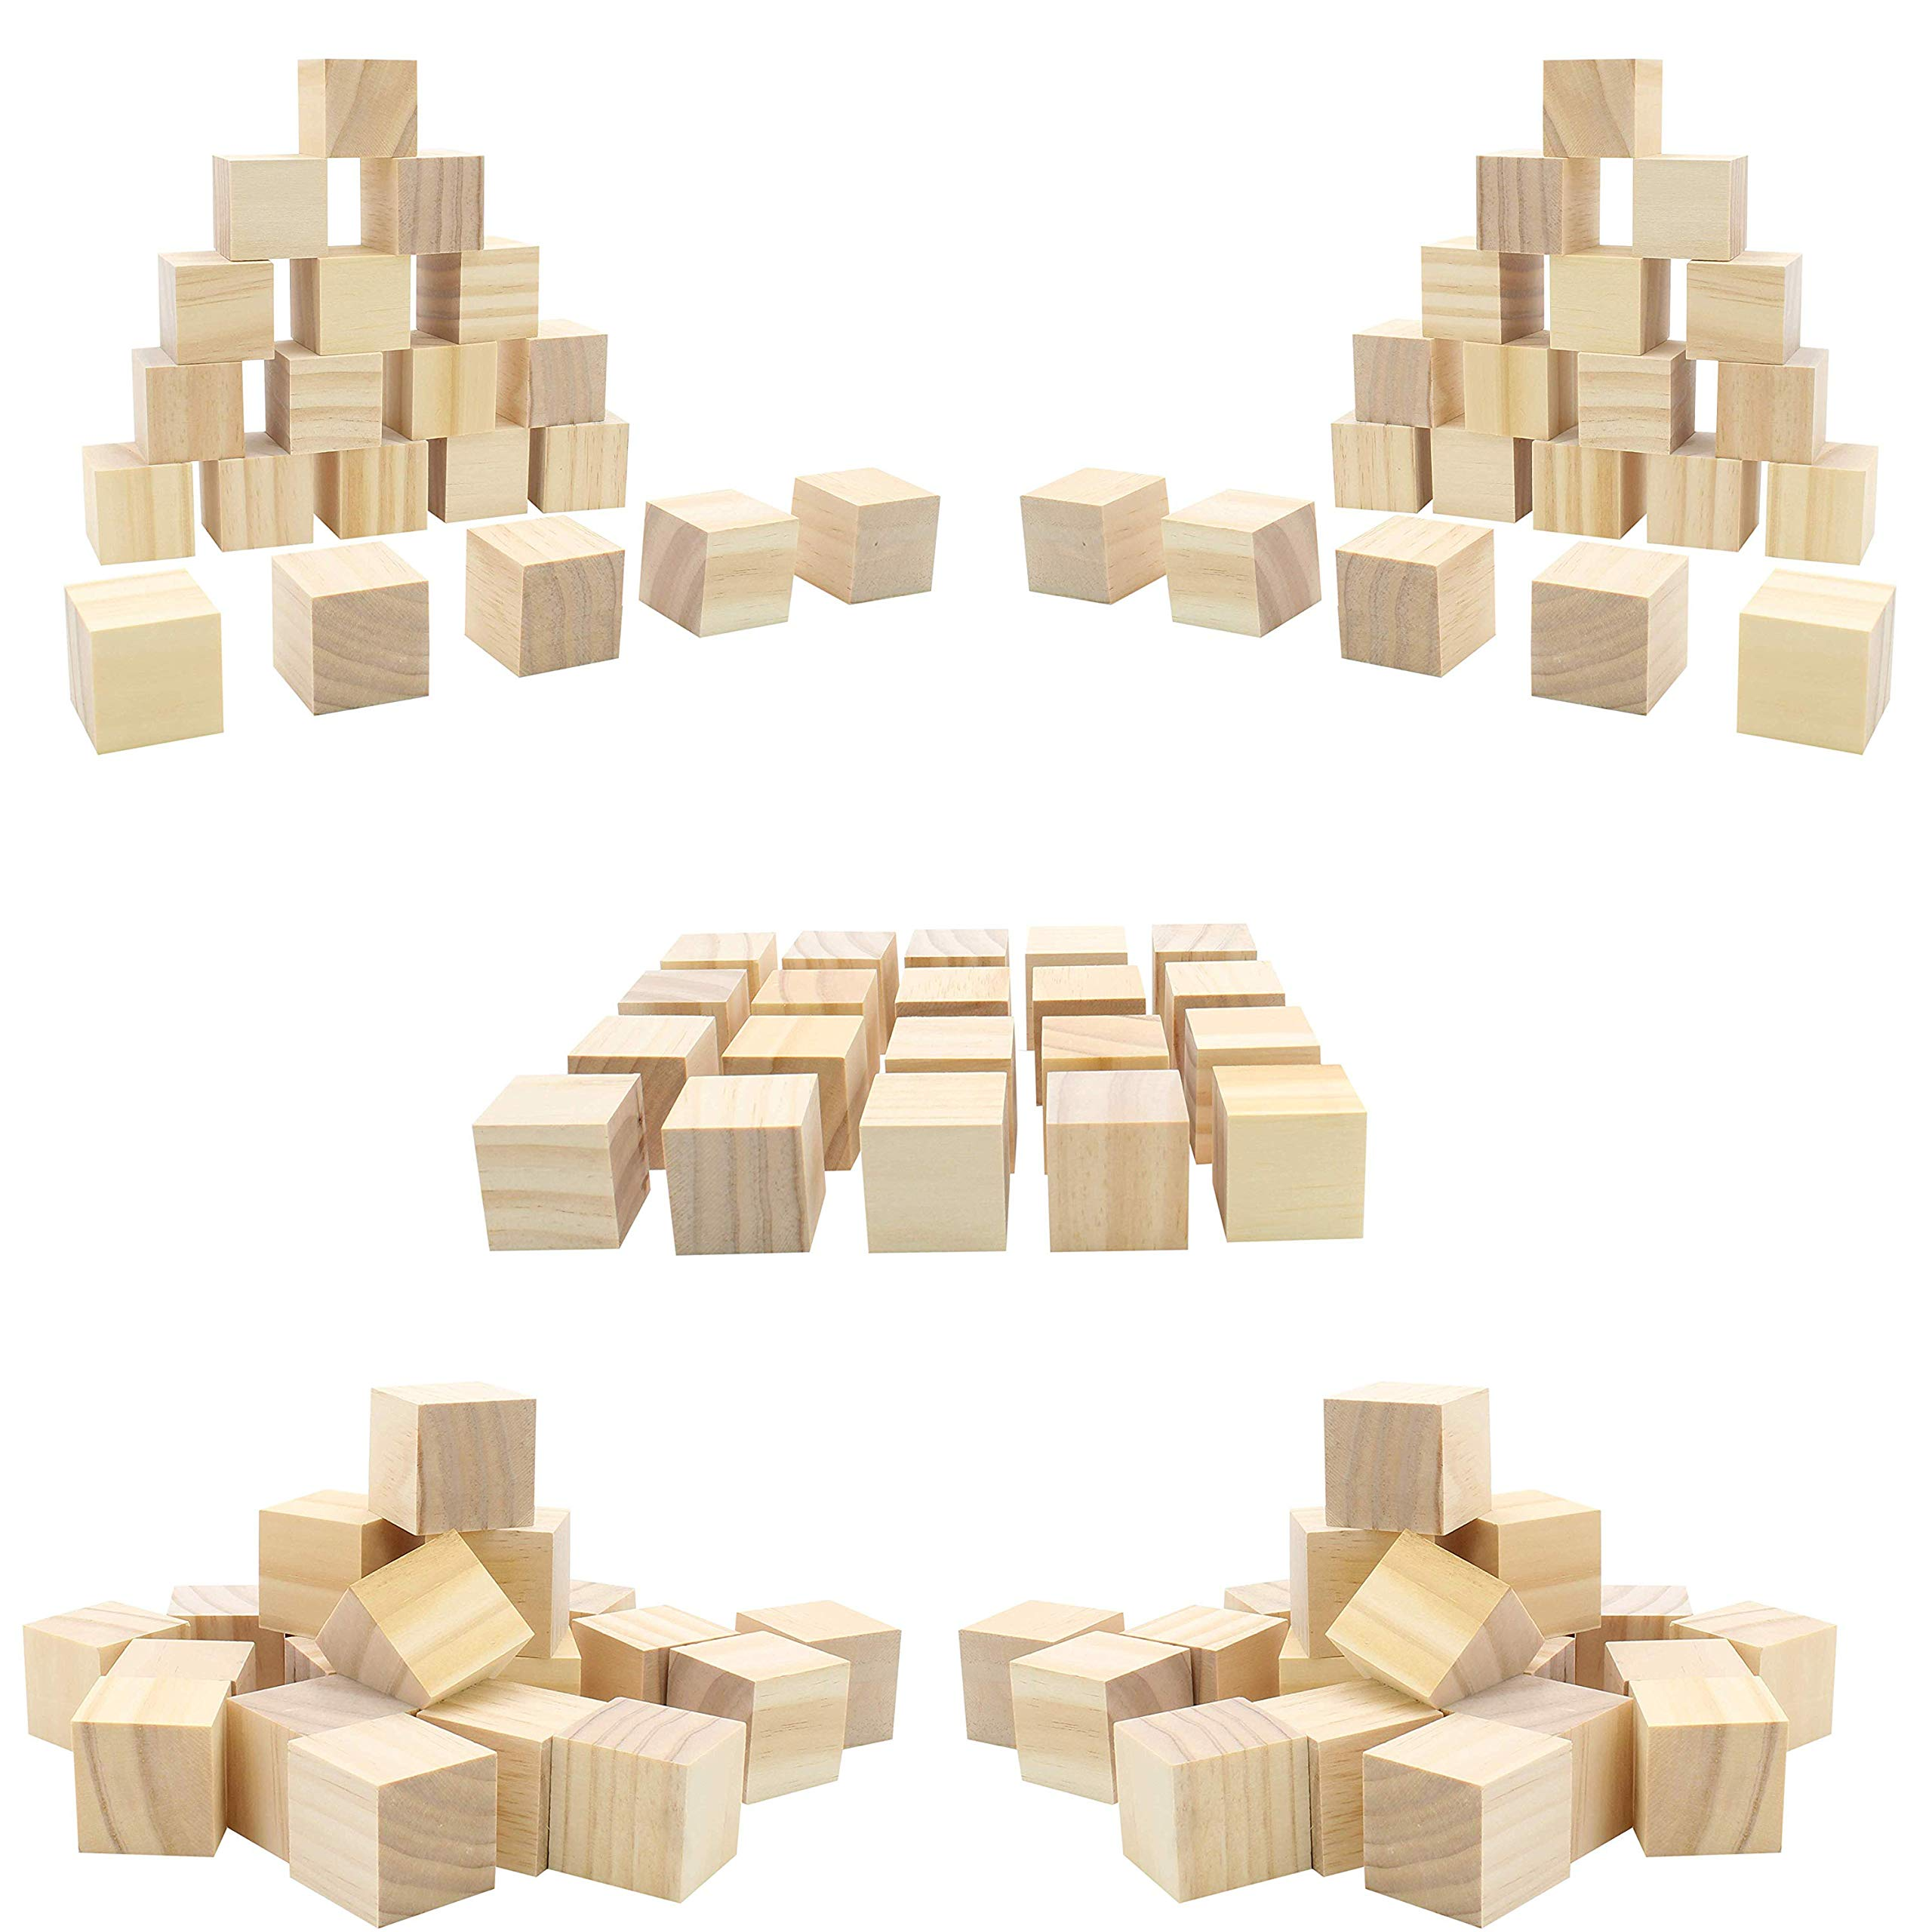 (50pc) Blank Real Wood Natural Alphabet Blocks for Crafts Painting Wood Burning Engraving Weddings Parties Unfinished and Unpainted Wooden 1.5'' x 1.5'' Cubes